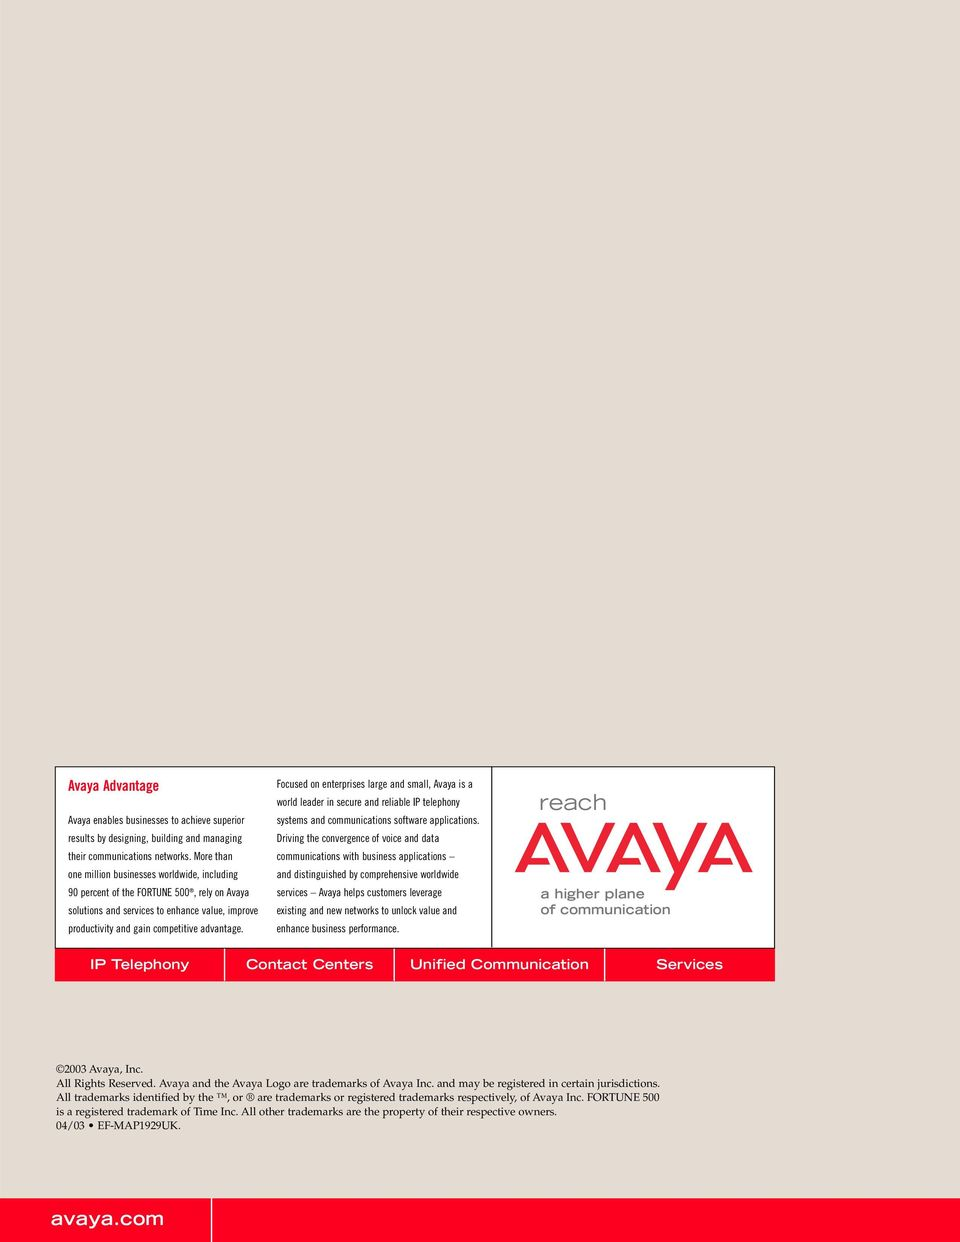 Focused on enterprises large and small, Avaya is a world leader in secure and reliable IP telephony systems and communications software applications.